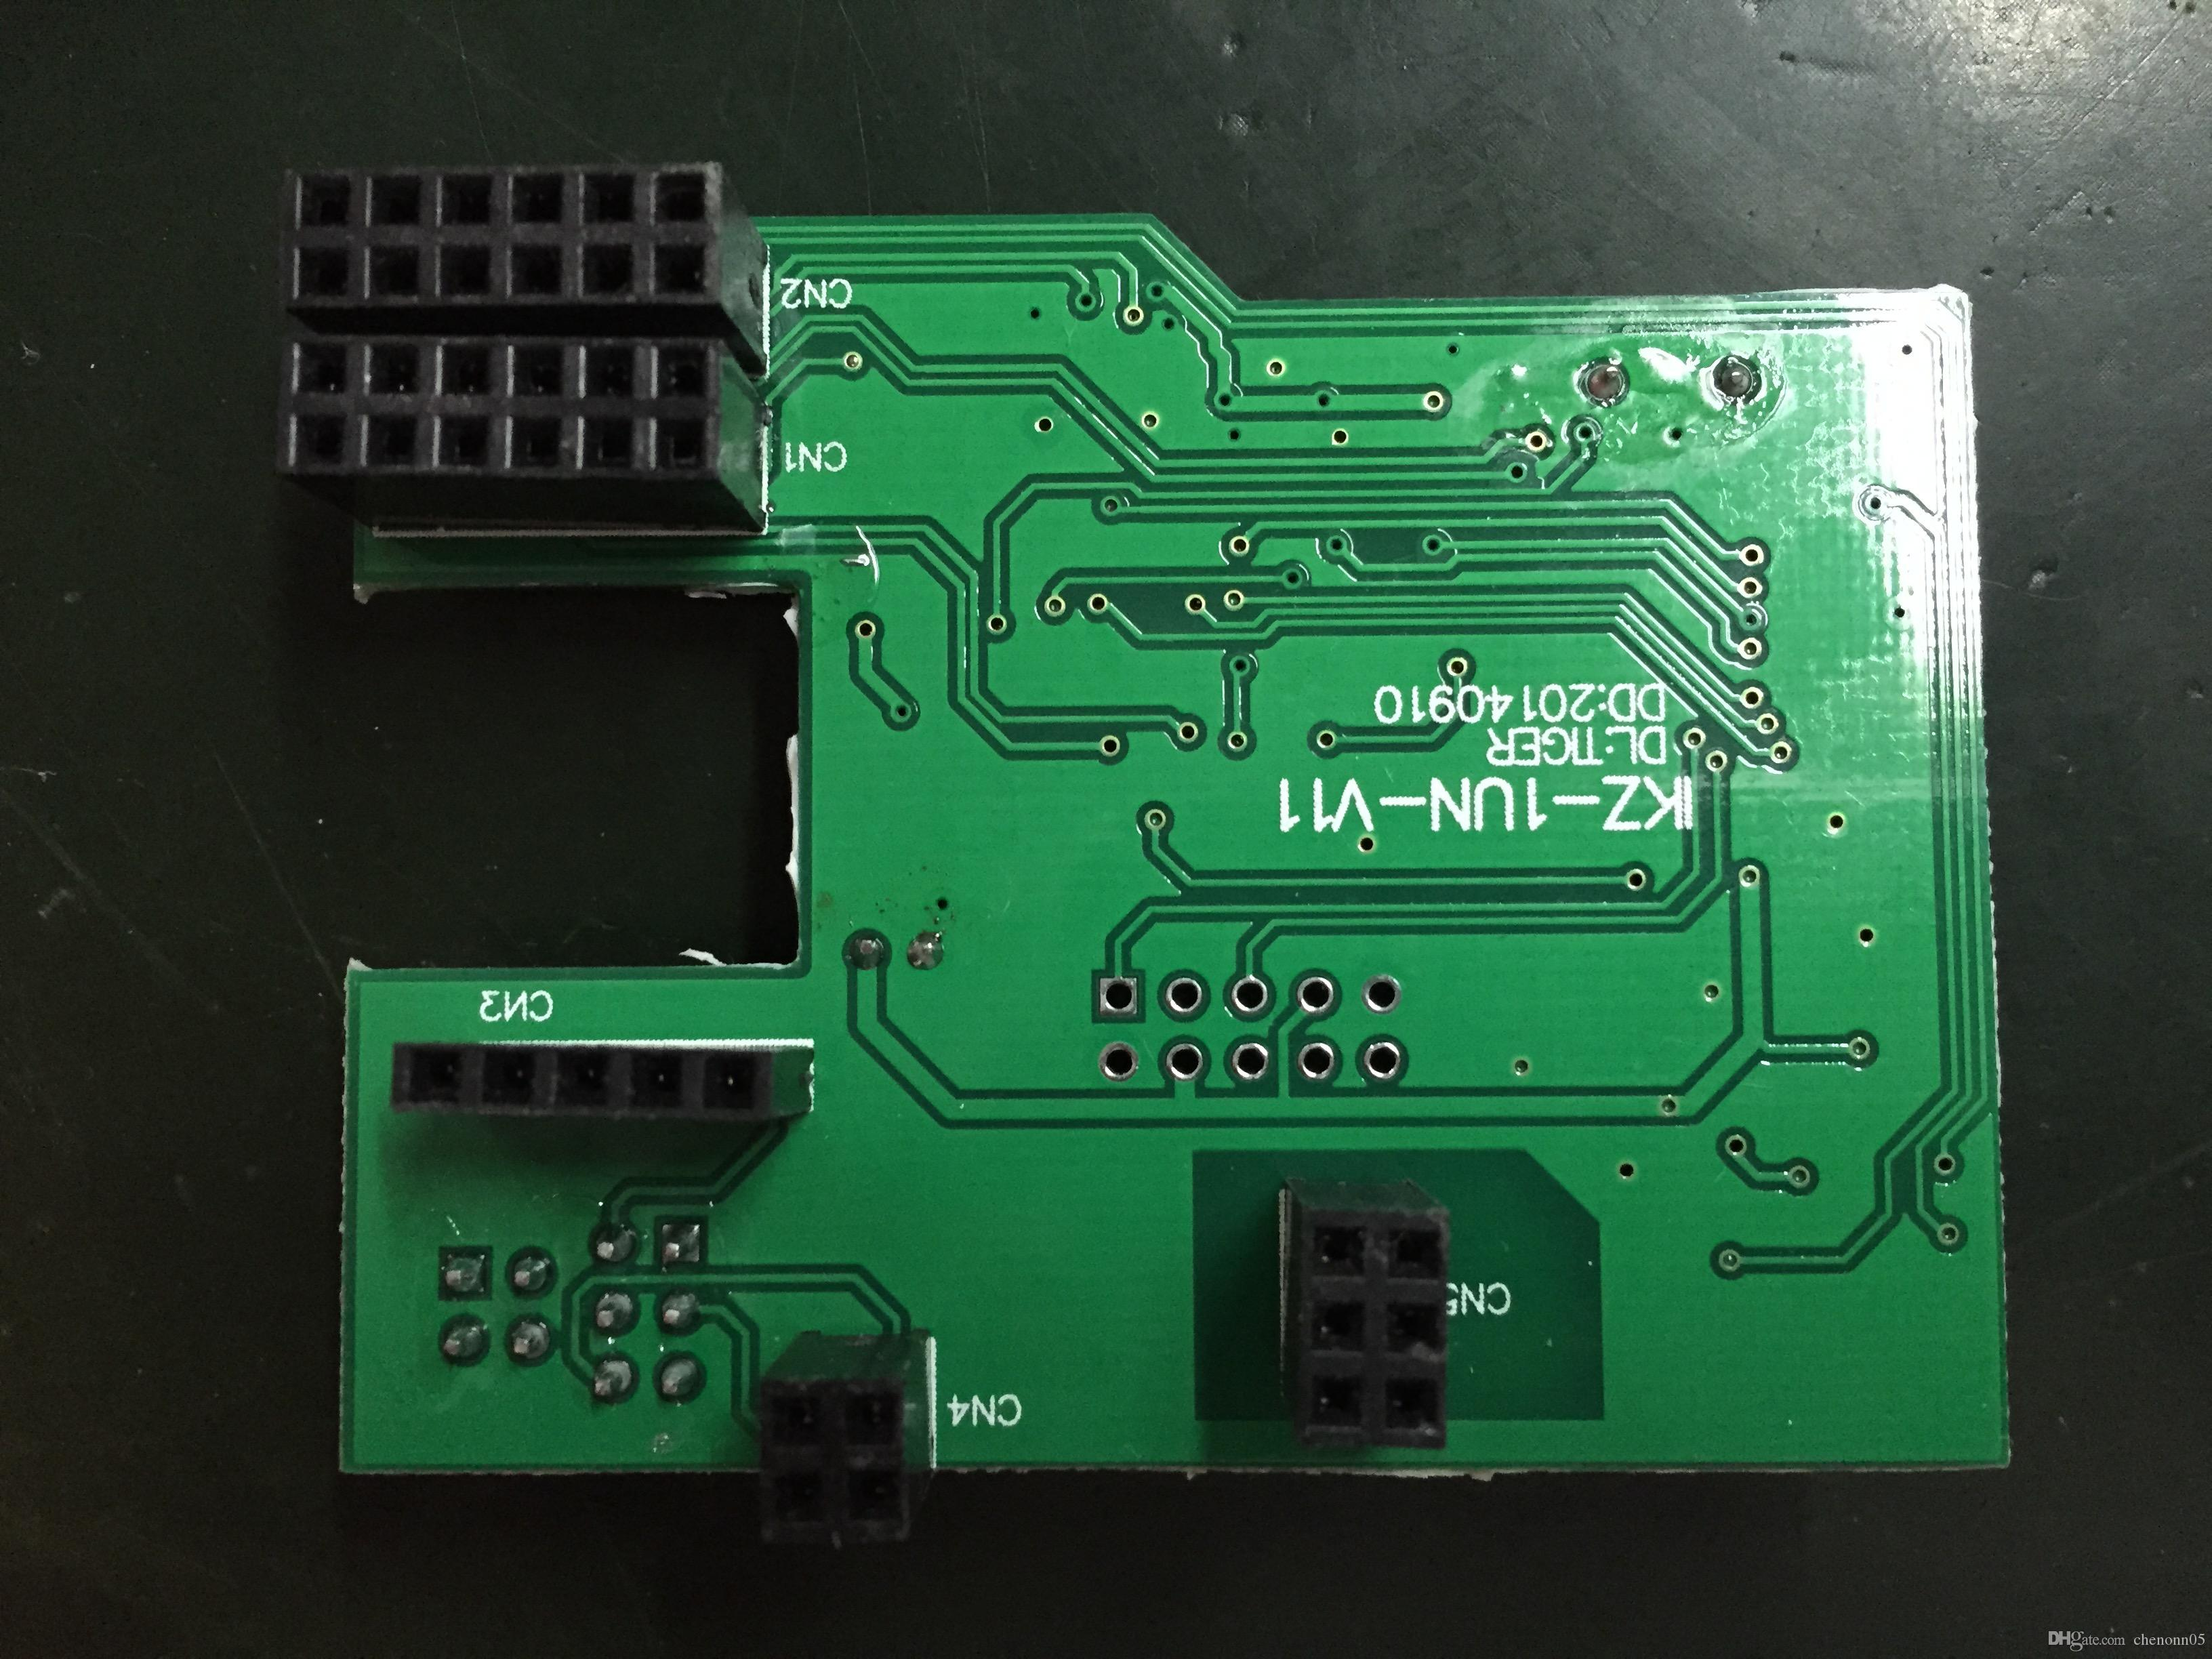 2018 Light Control Circuits Printed Circuit Boards Dvd Electronic House Wiring Electronica Board Smart Home Products Electronics From Chenonn05 131 Dhgate